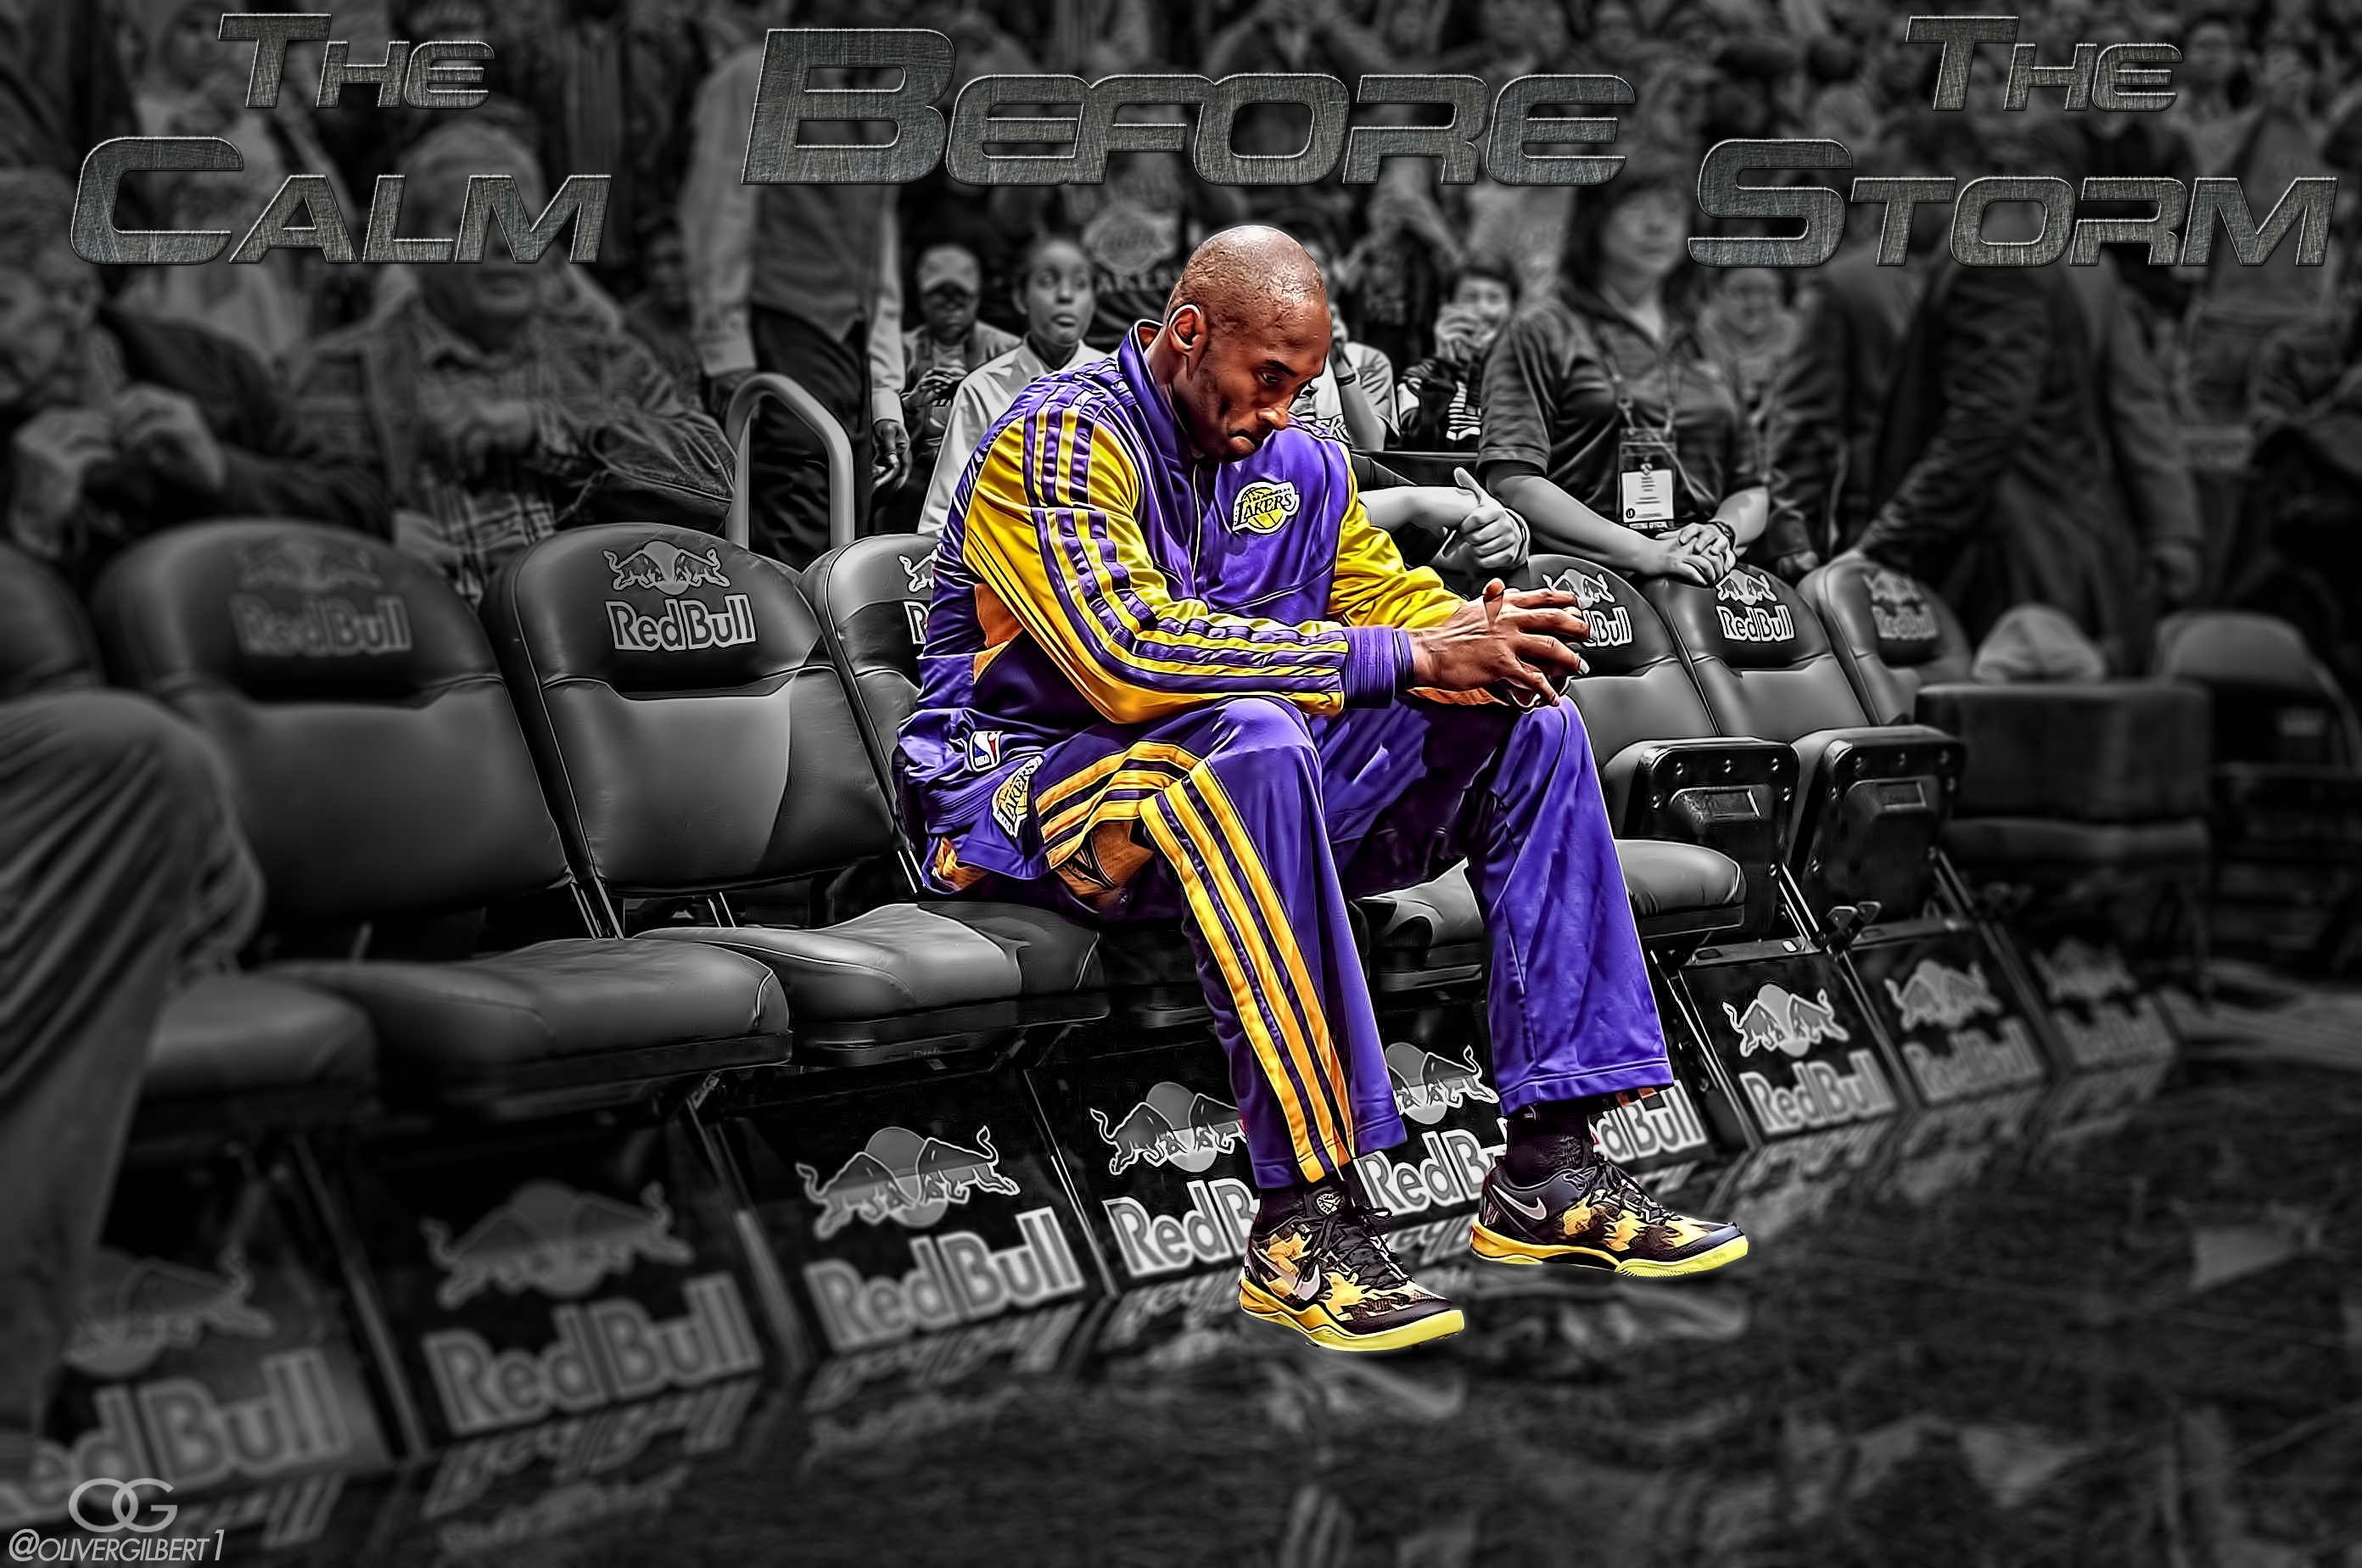 Kobe bryant wallpaper hd 2013 greatness is a lifestyle kobe bryant wallpaper hd 2013 voltagebd Image collections